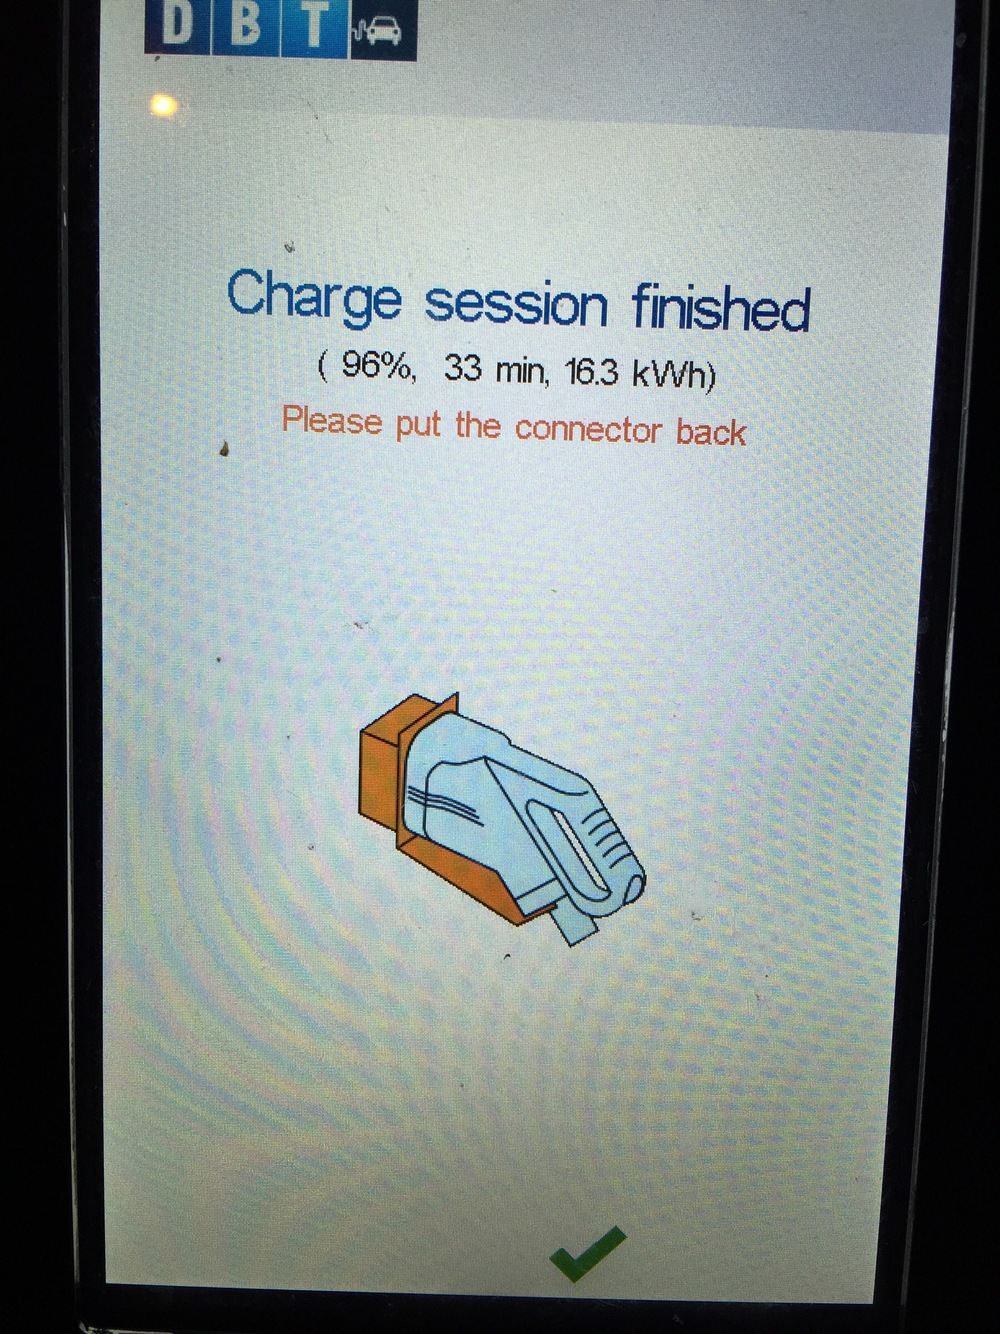 Charge Completed at Exeter Services